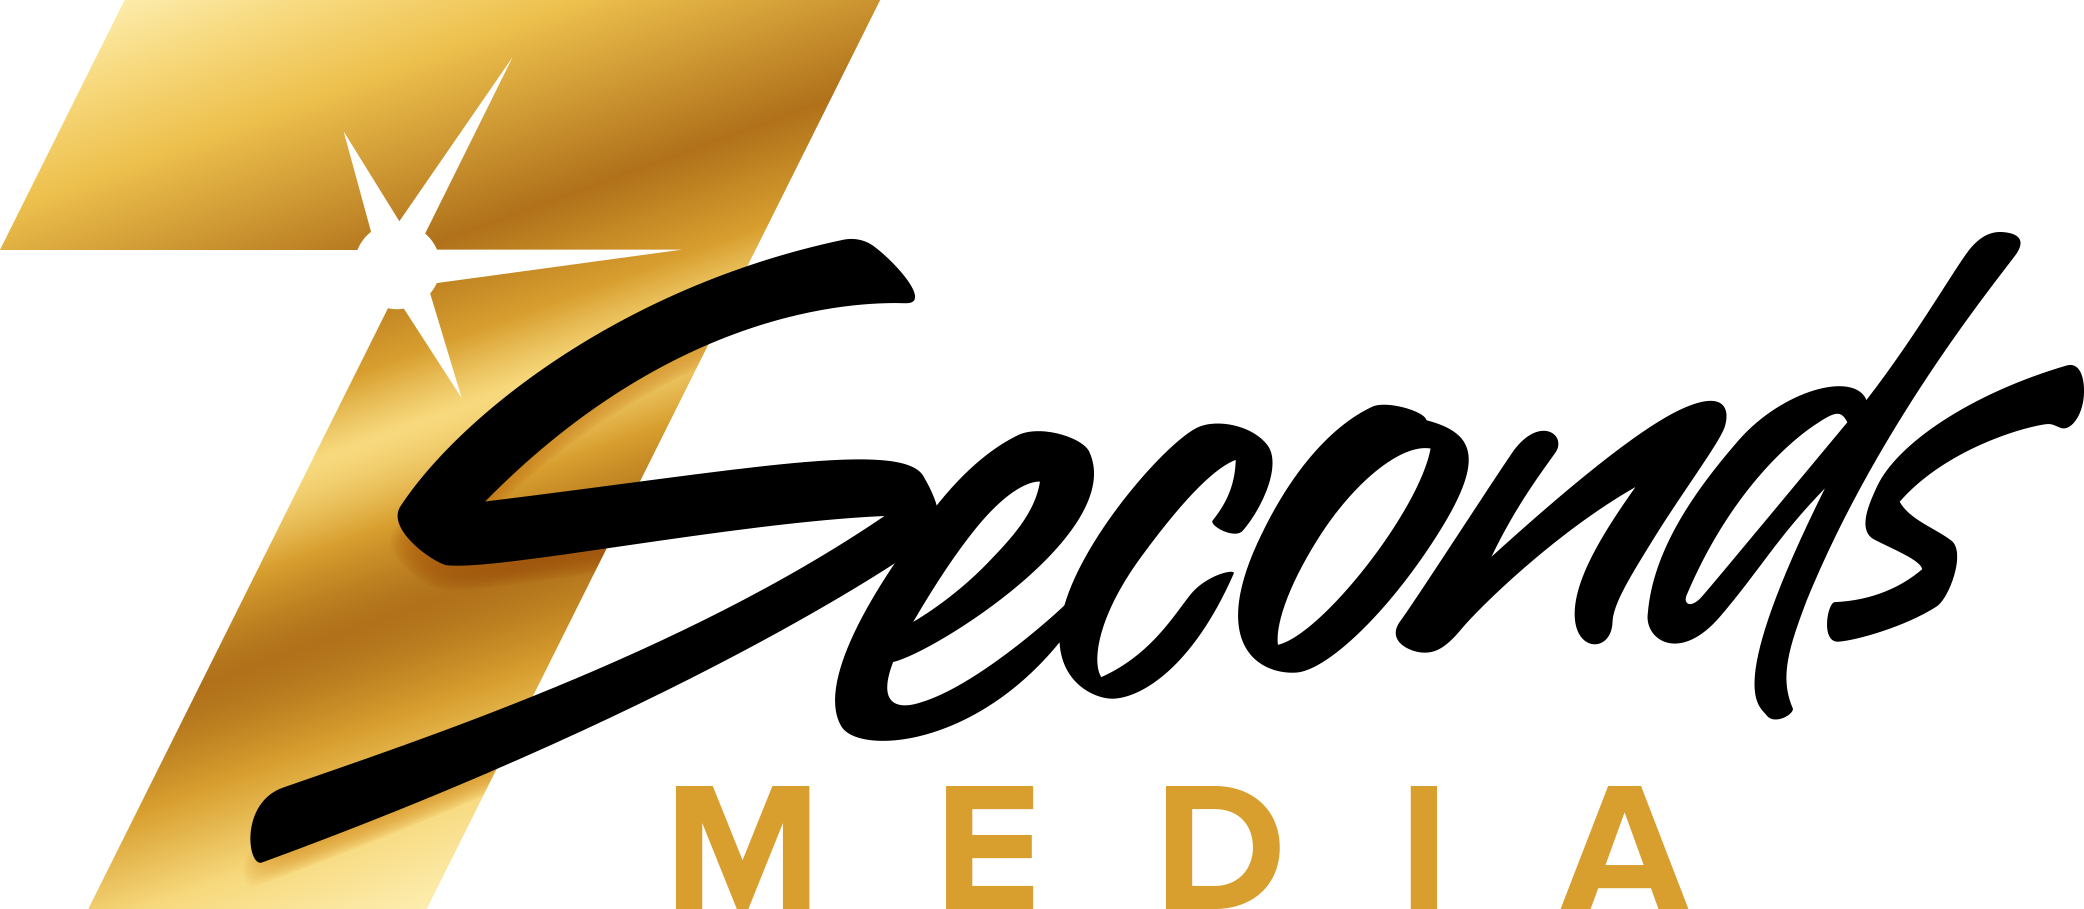 7 Seconds Media